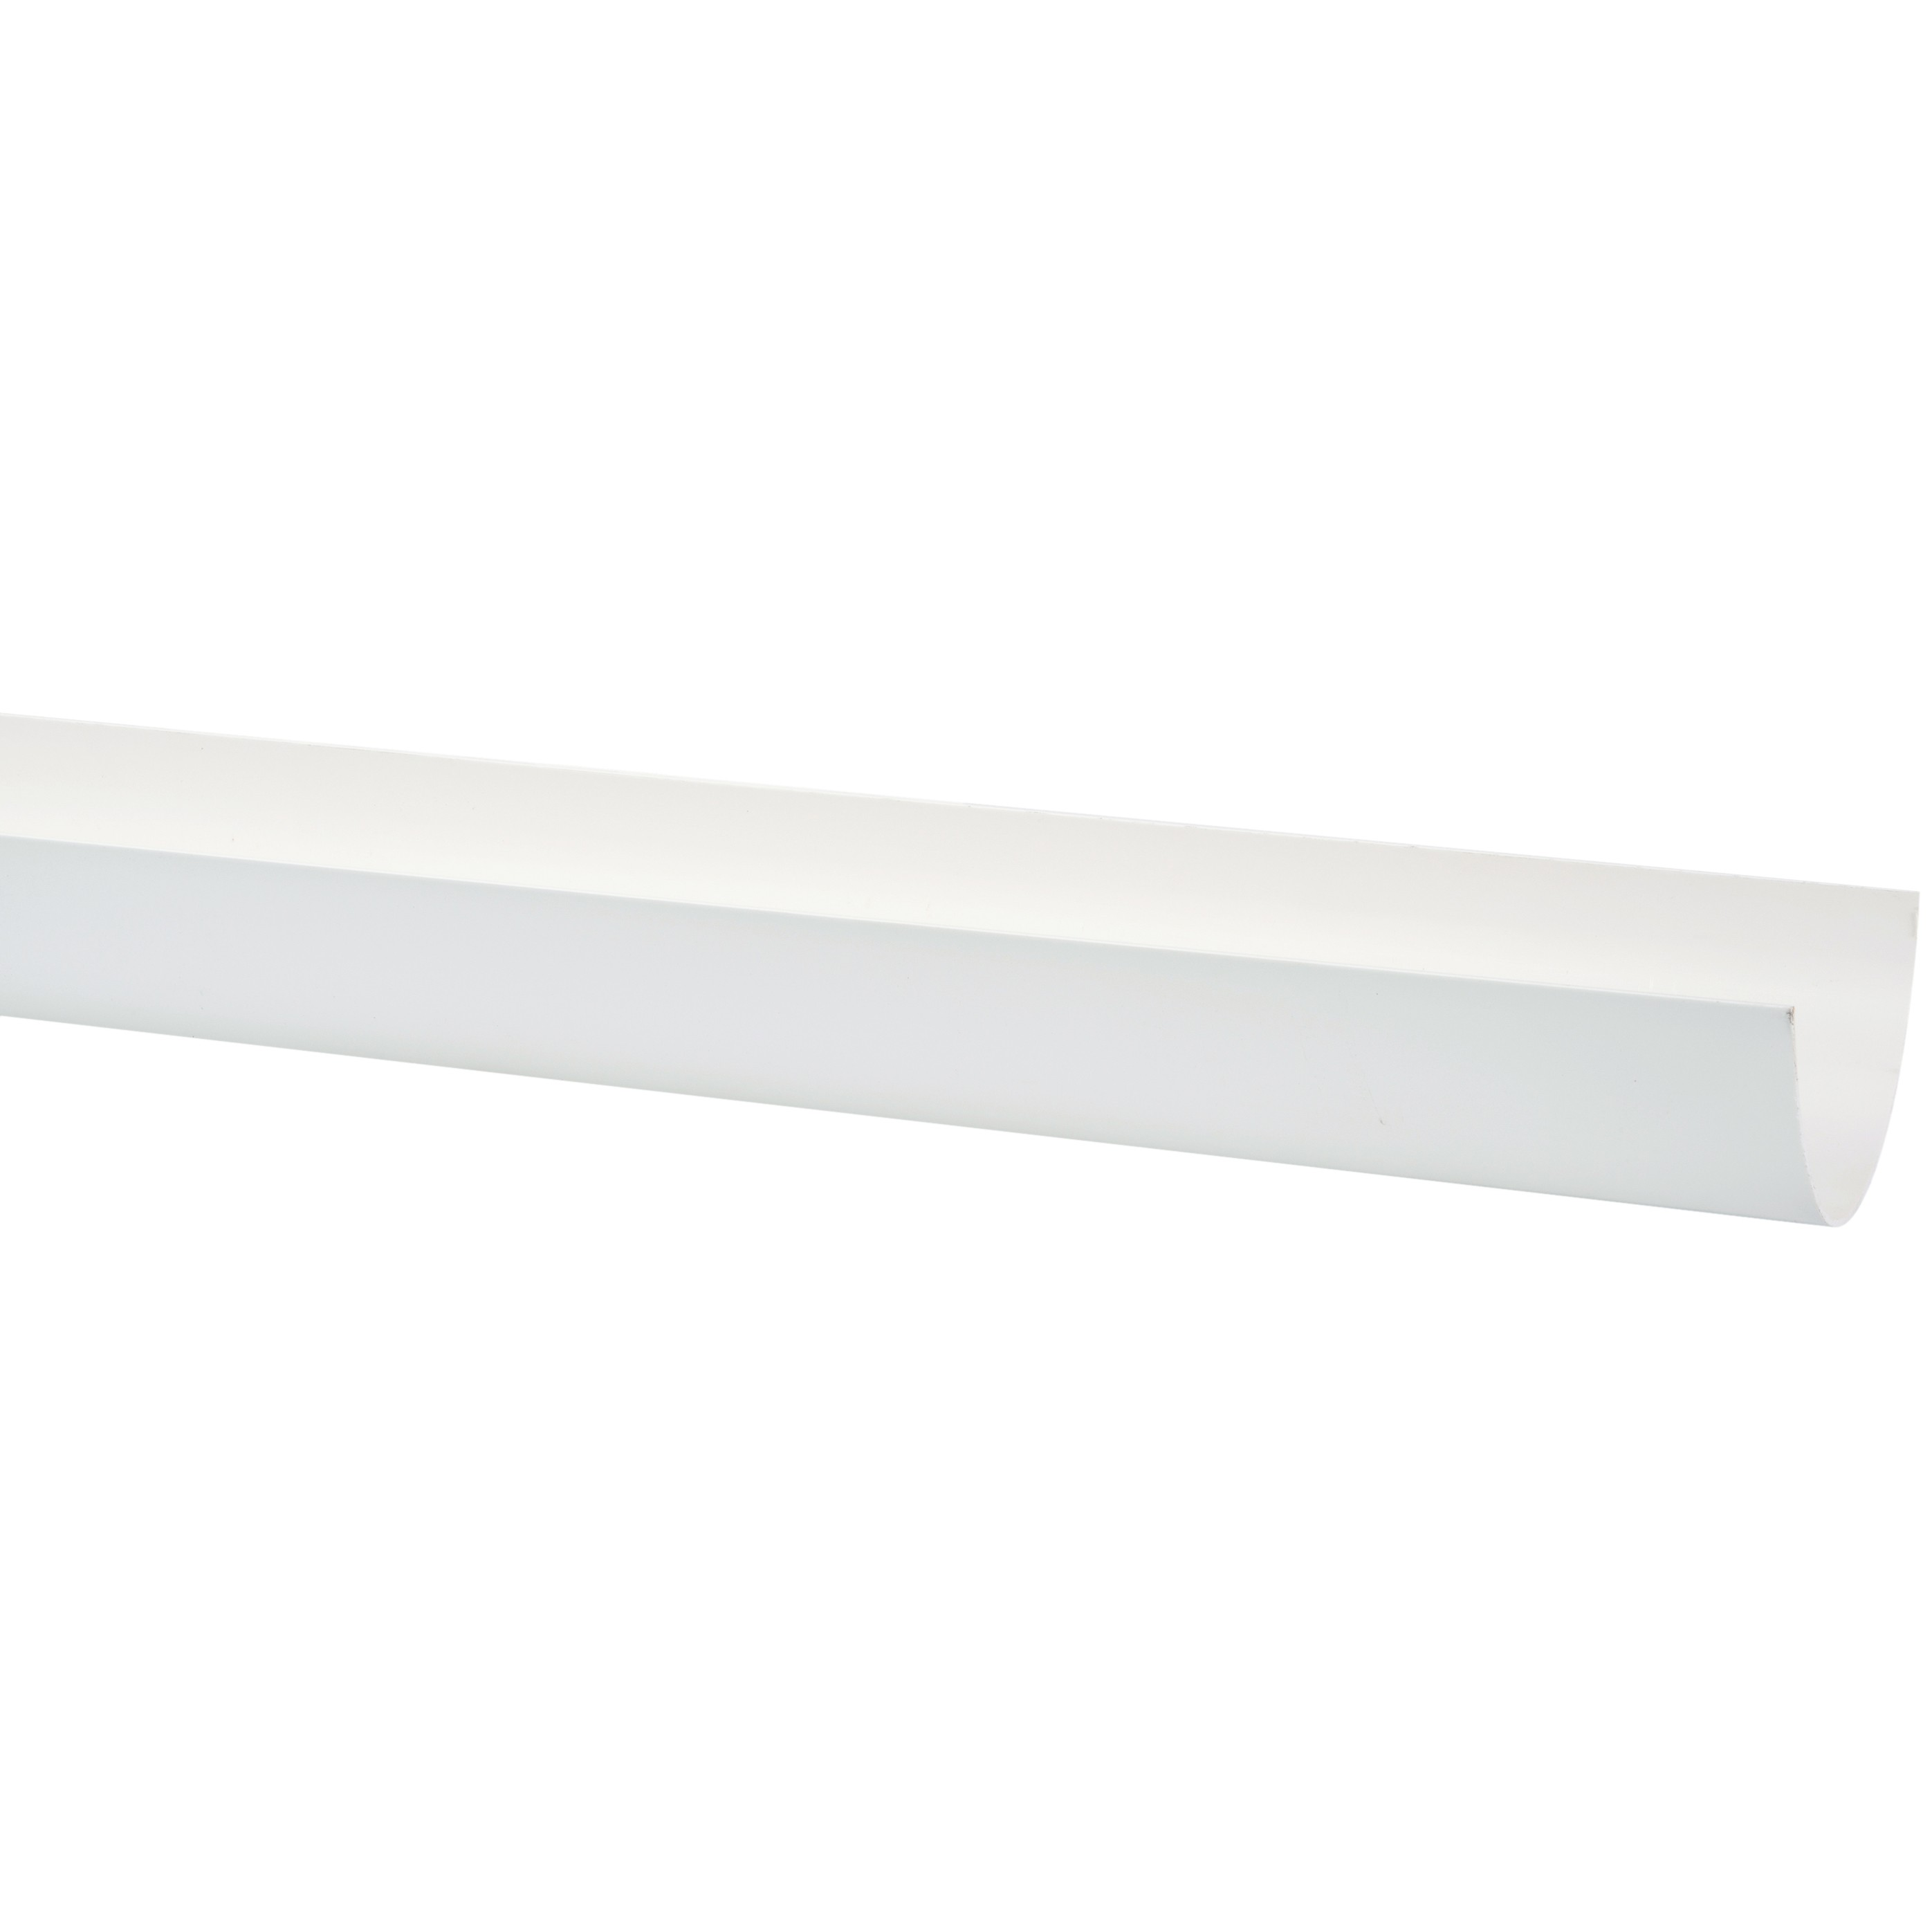 Polypipe 117mm Polyflow Deep Capacity Gutter - White, 4 metre